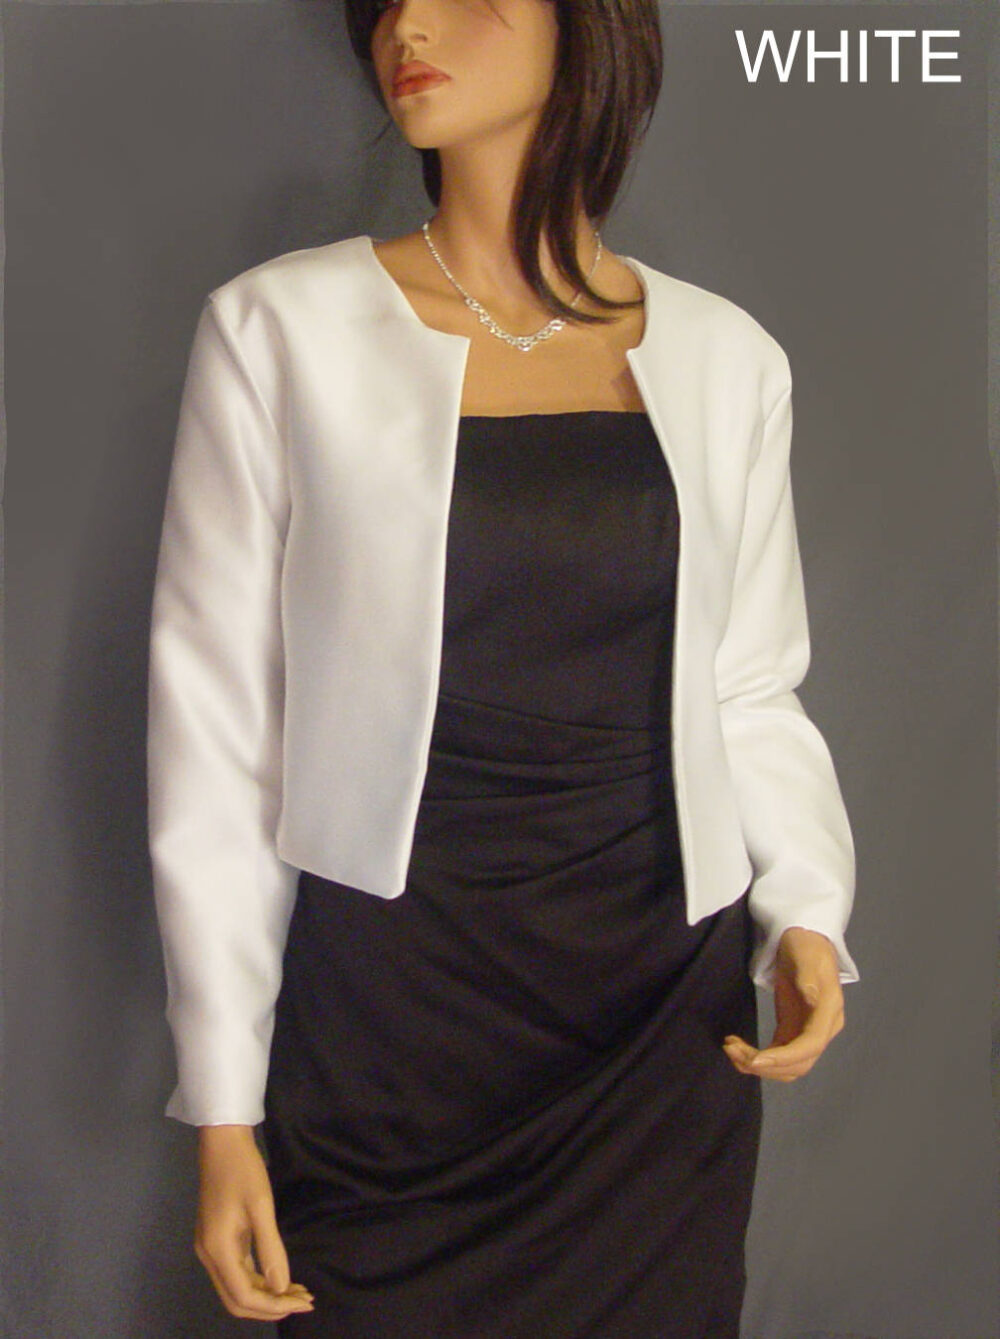 Satin Bolero Jacket With Long Sleeve Hip Length Wedding Shrug Coat Cover Up Sba130 Available in White & 5 Other Colors. Small - Plus Size